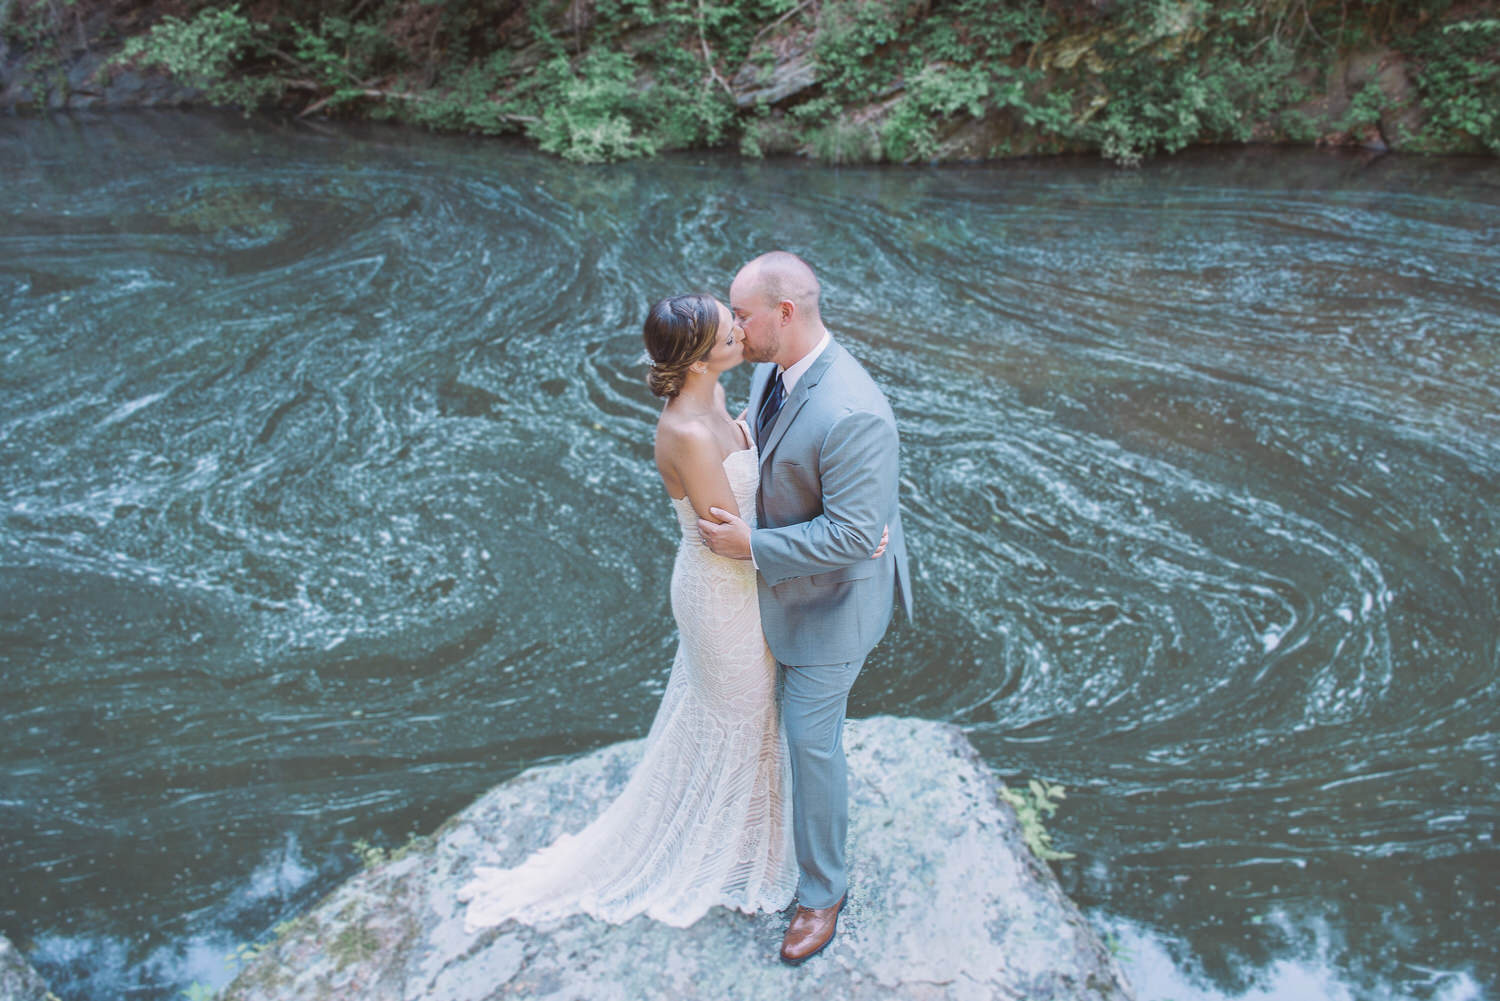 Hightower Falls Wedding Venue in Cedartown, Ga.